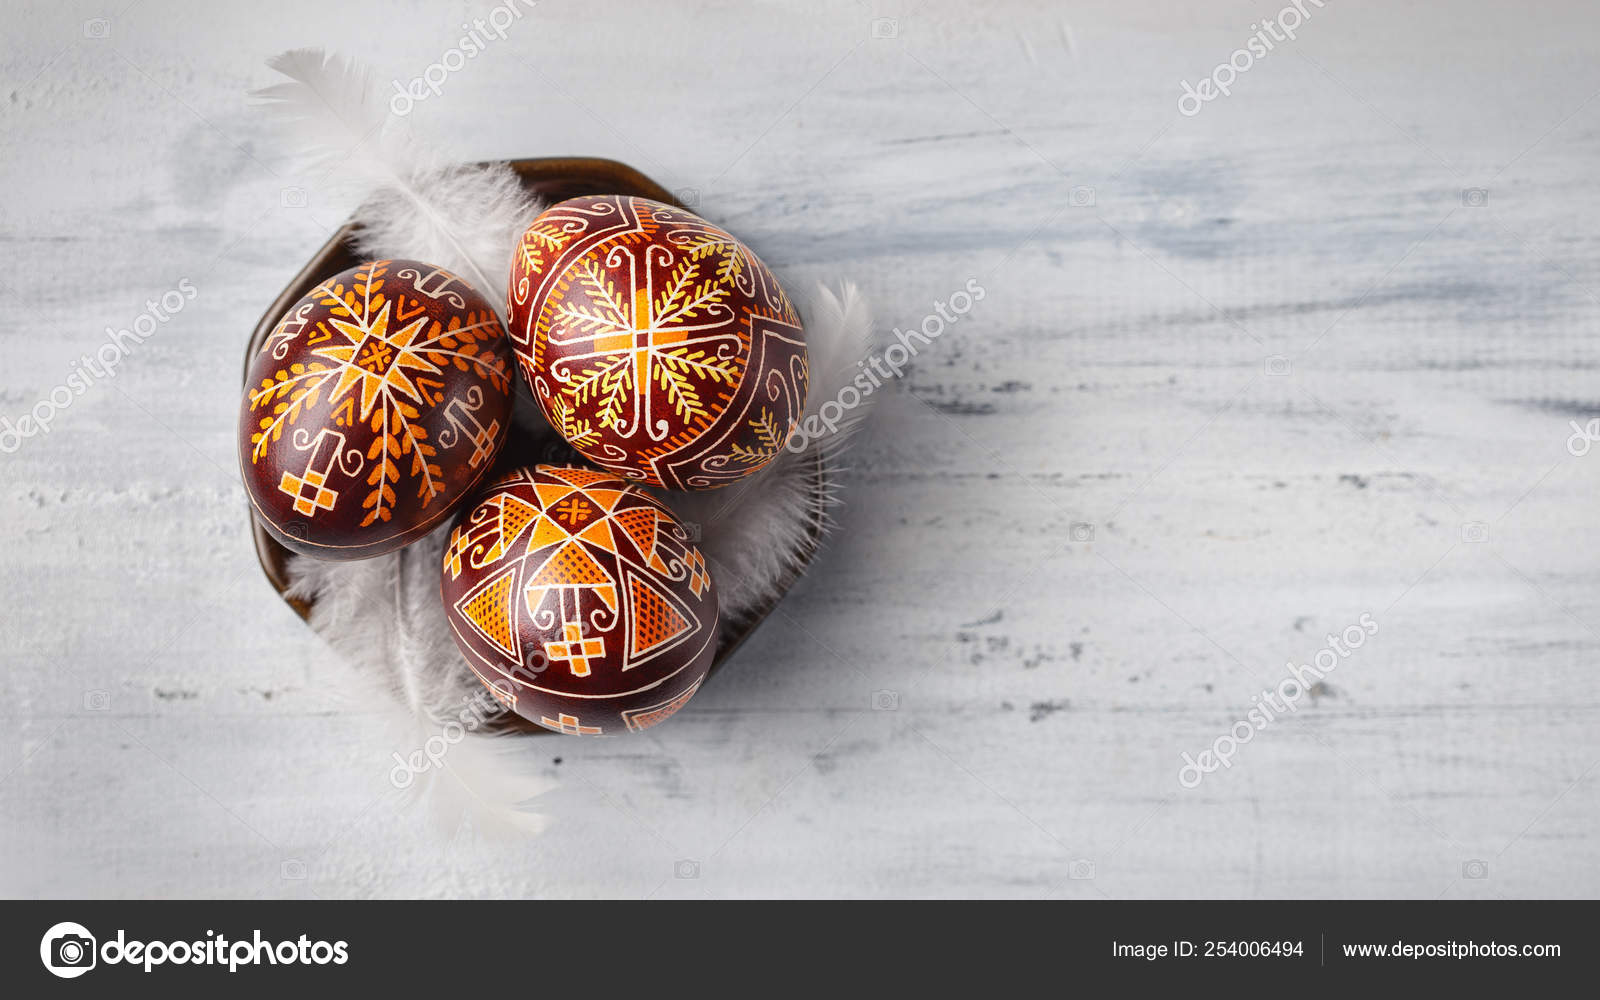 Easter Eggs Decorated With Wax Resist Technique Stock Photo